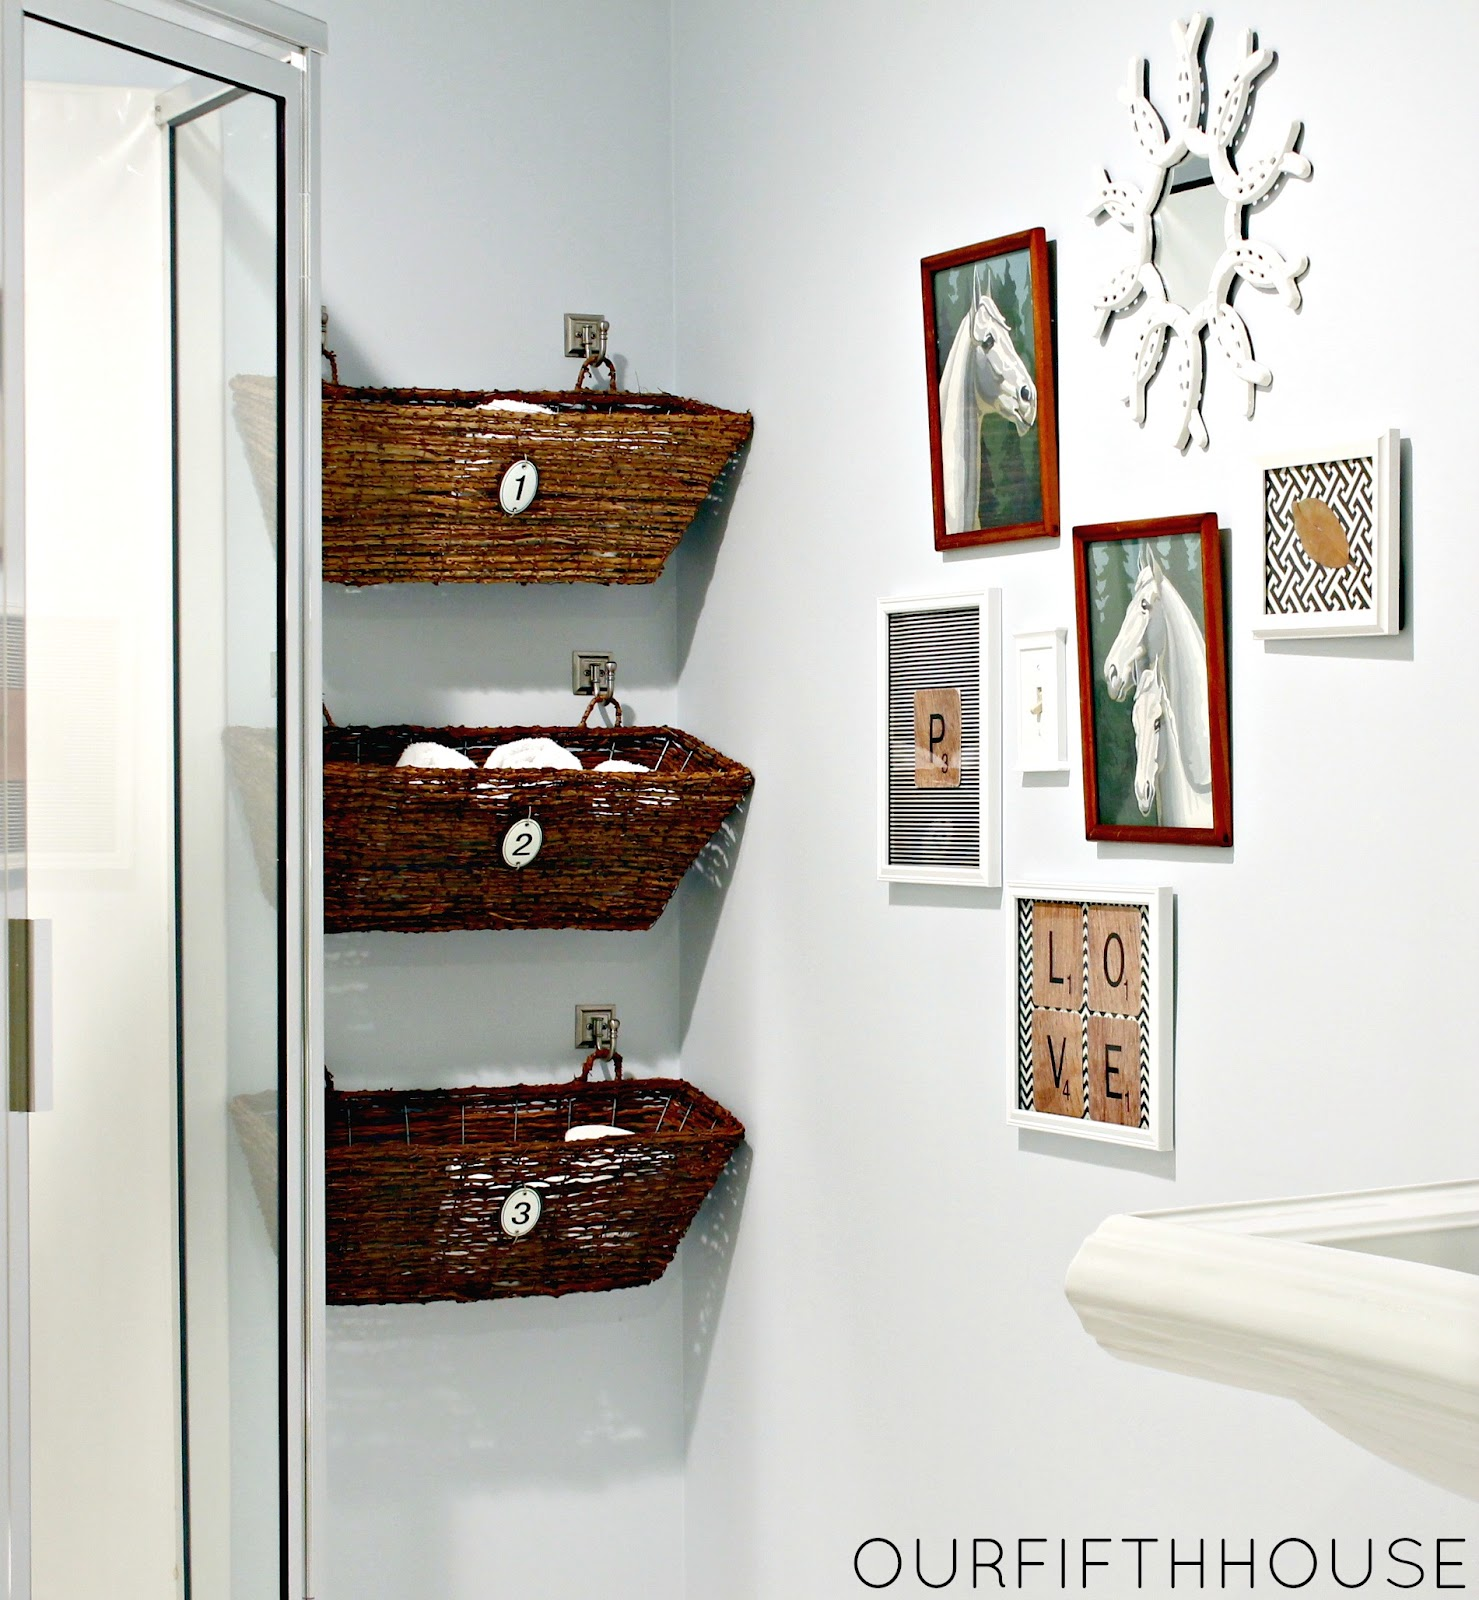 Window Box Bathroom Storage Perfect For A Small Bathroom Our - Bathroom basket ideas for small bathroom ideas